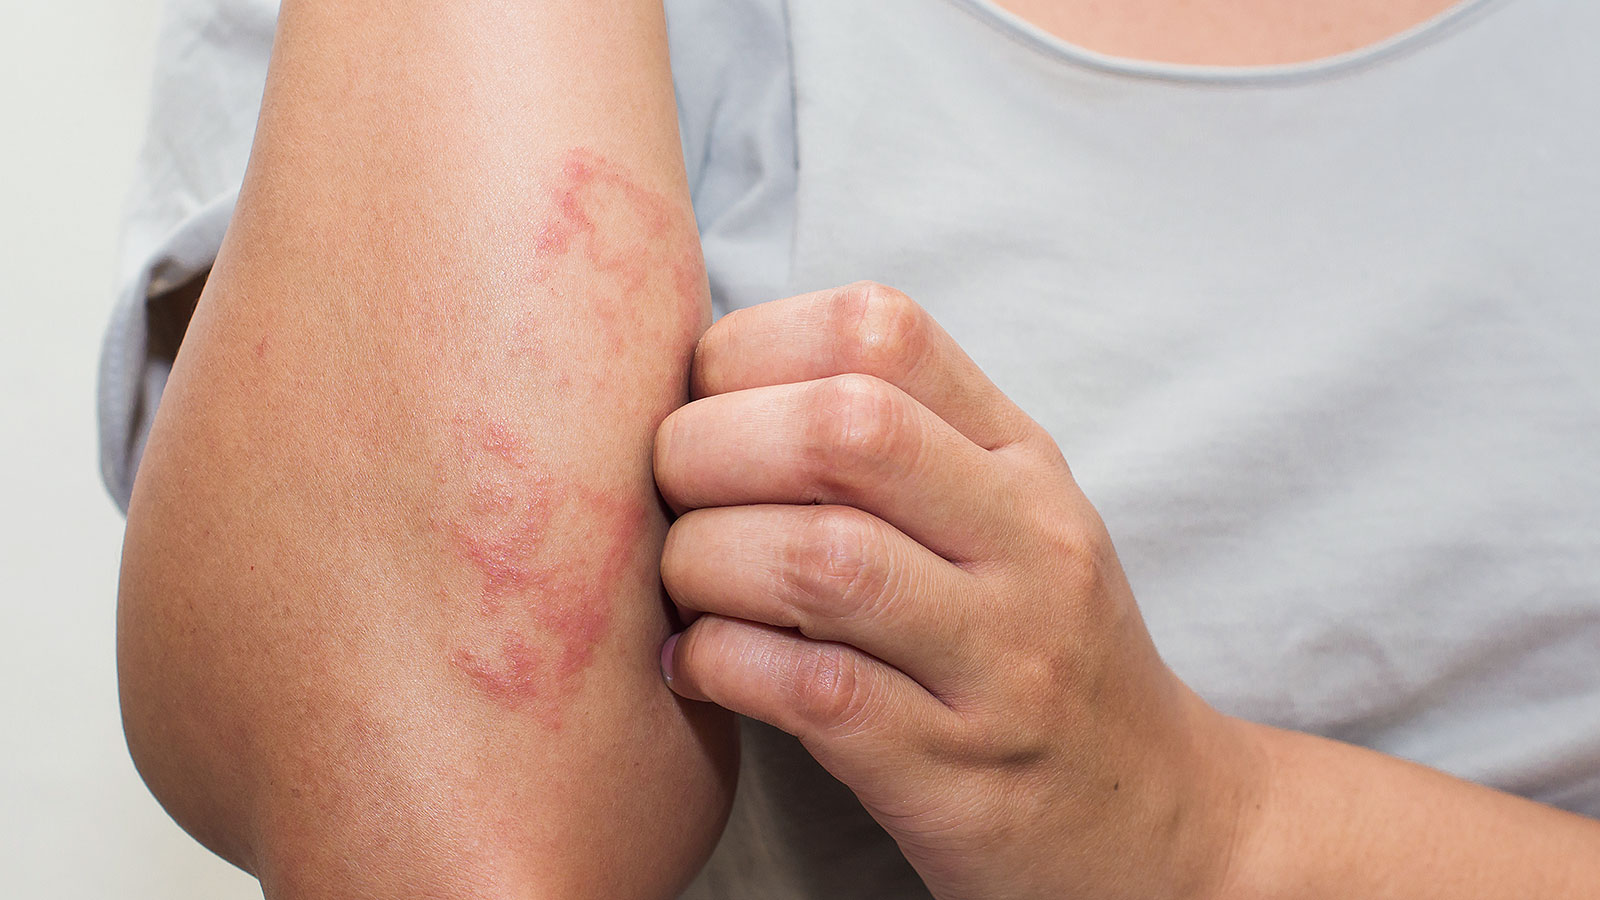 New study links this common skin condition with an increased risk in heart disease